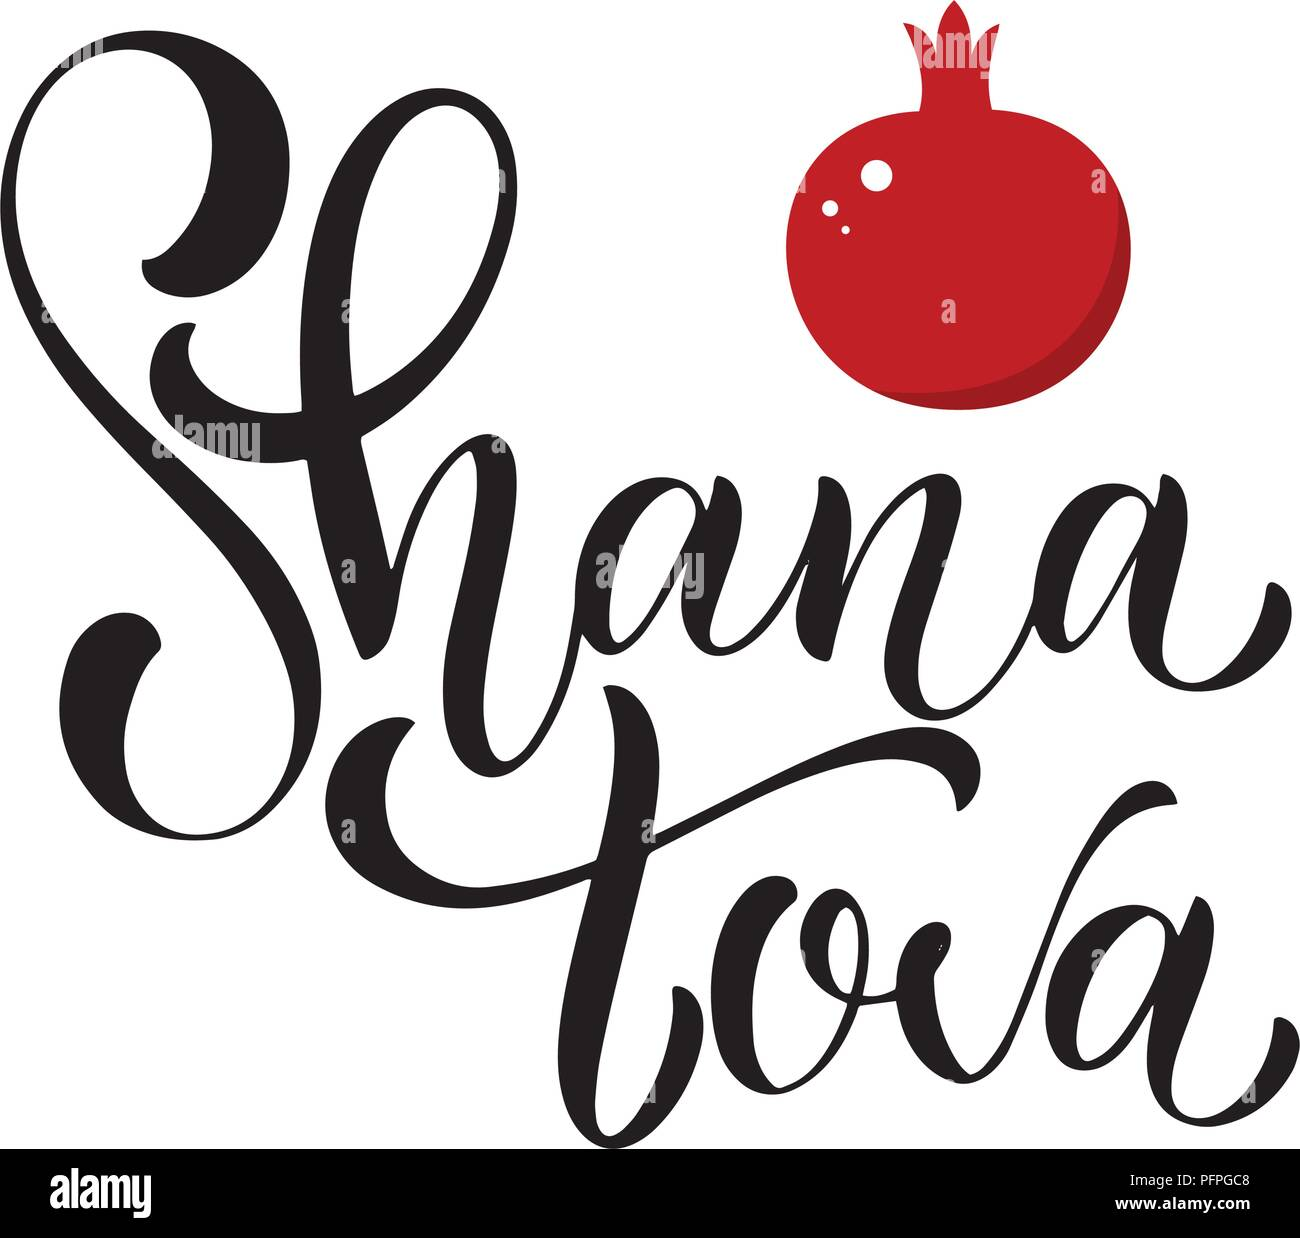 Shana Tova calligraphy text for Jewish New Year. Blessing of Happy ...